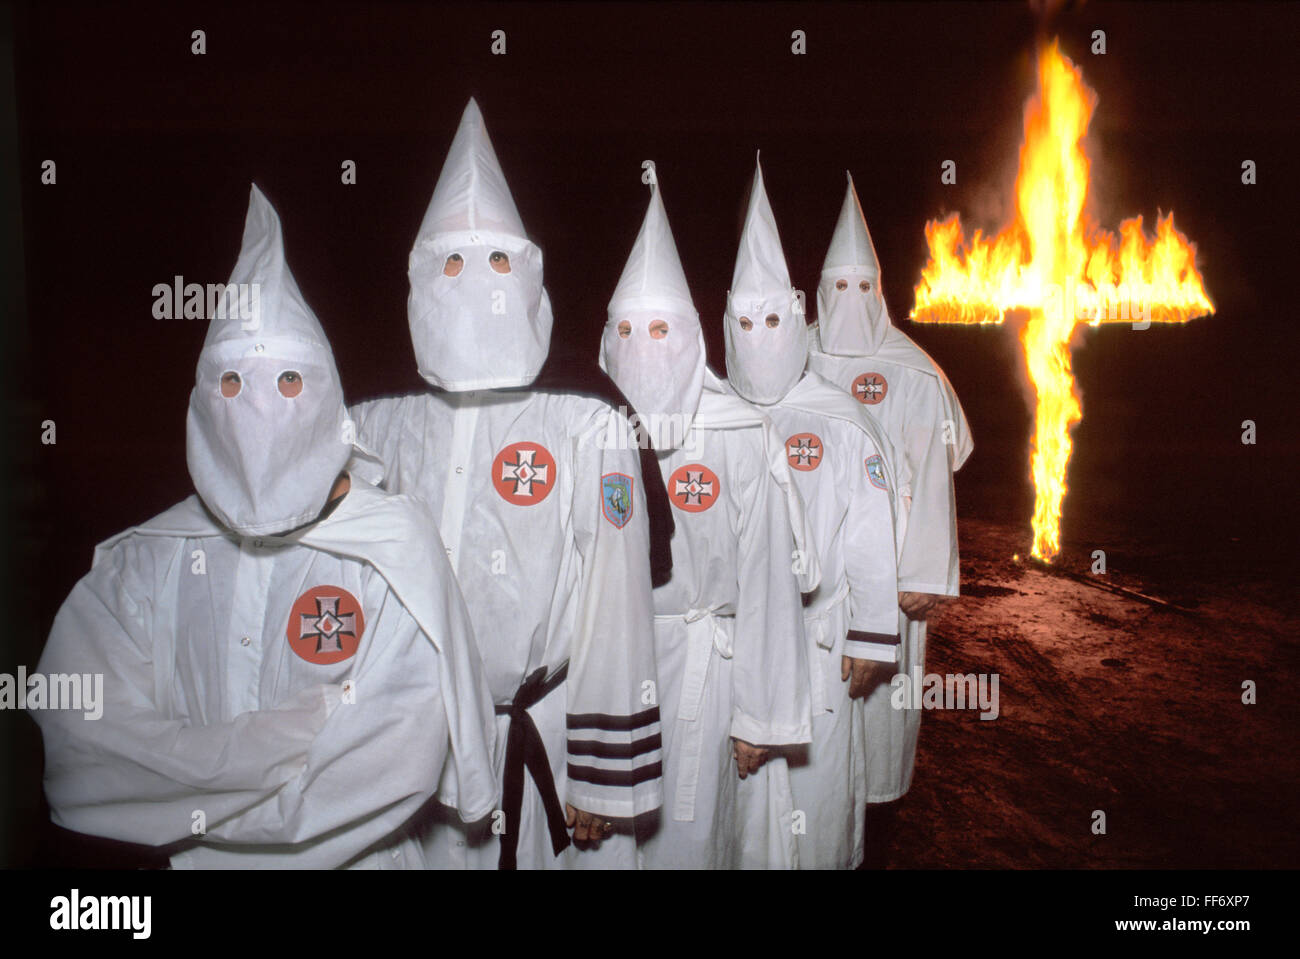 Kkk Stock Photos and Images